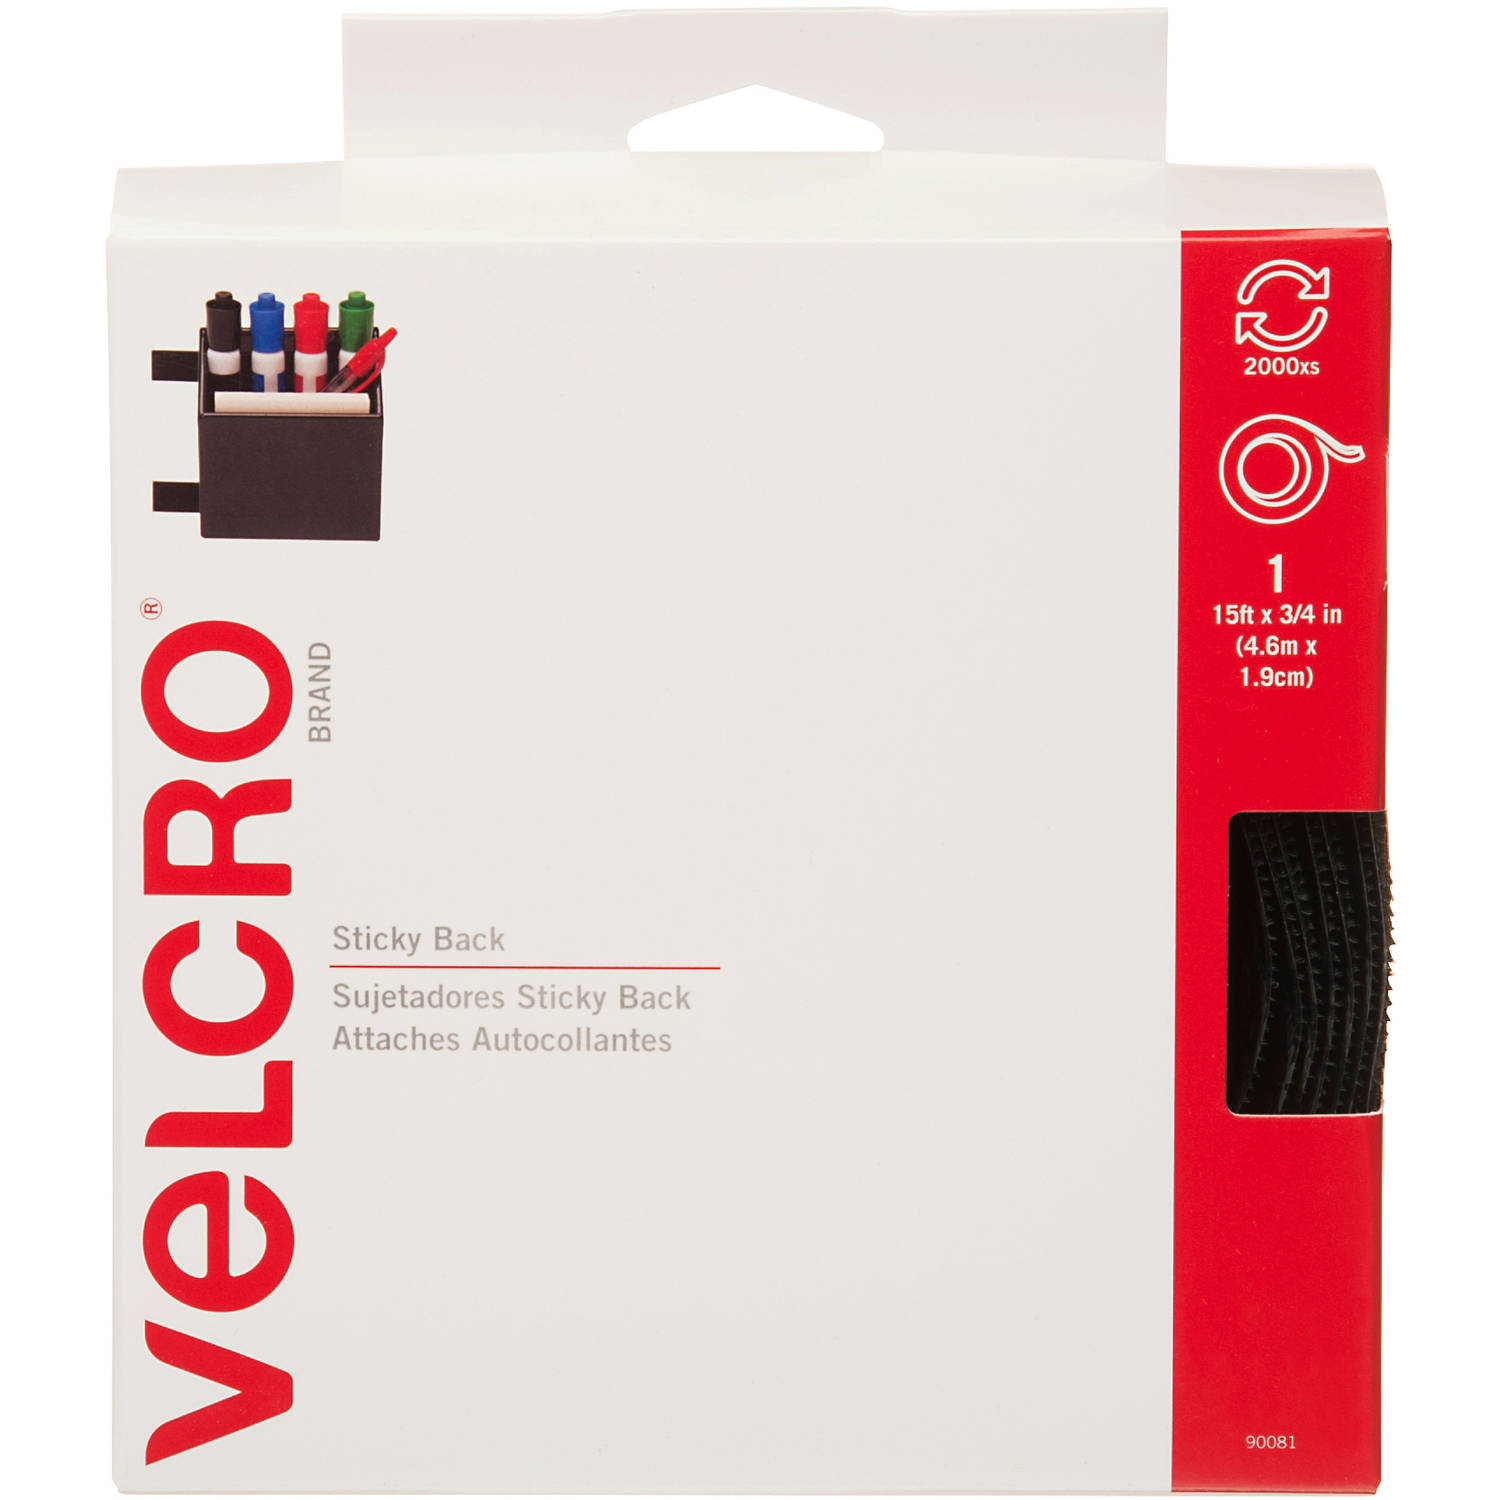 VELCRO Sticky-Back Hook & Loop Fastener Tape w/Dispenser, 3/4'' x 15 ft Roll